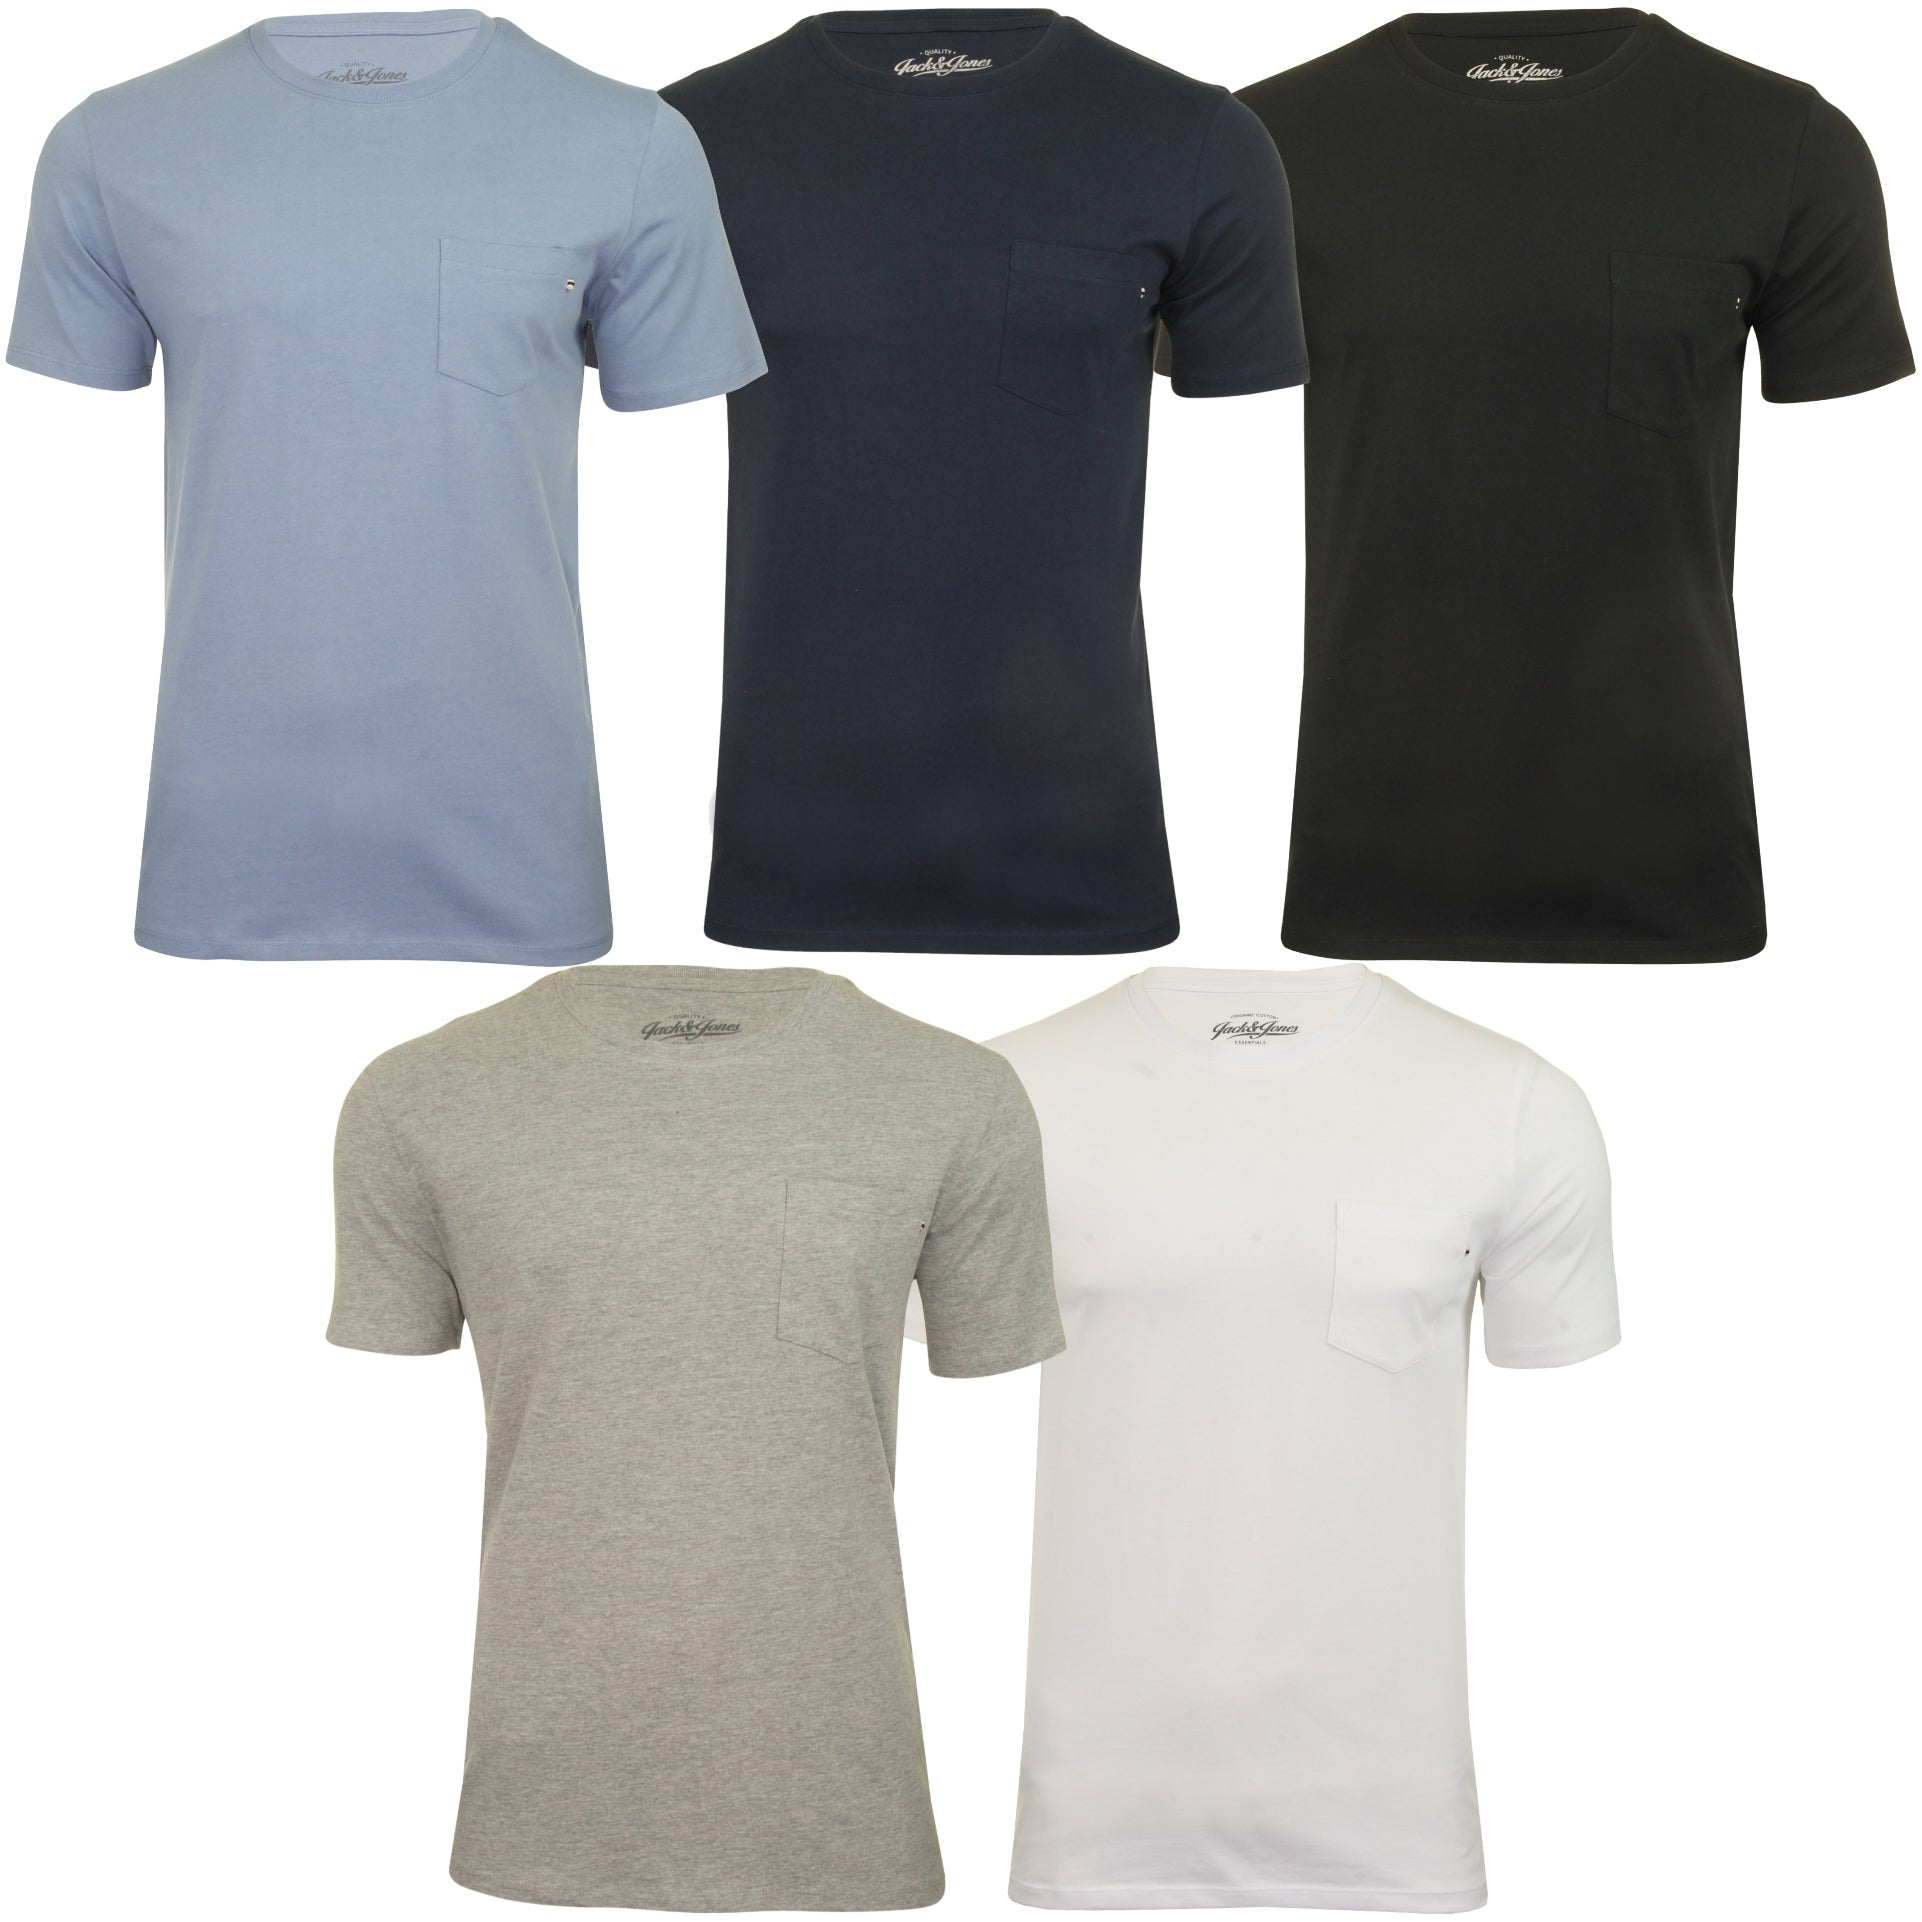 Jack & Jones Mens T-Shirt 'Pocket' - Short Sleeved-Main Image